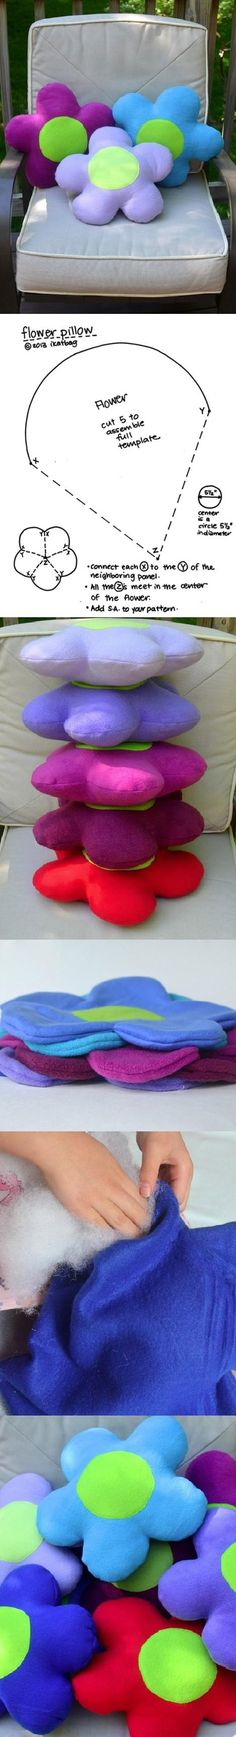 Flower pillows are fun to make and the kids will love them. You...